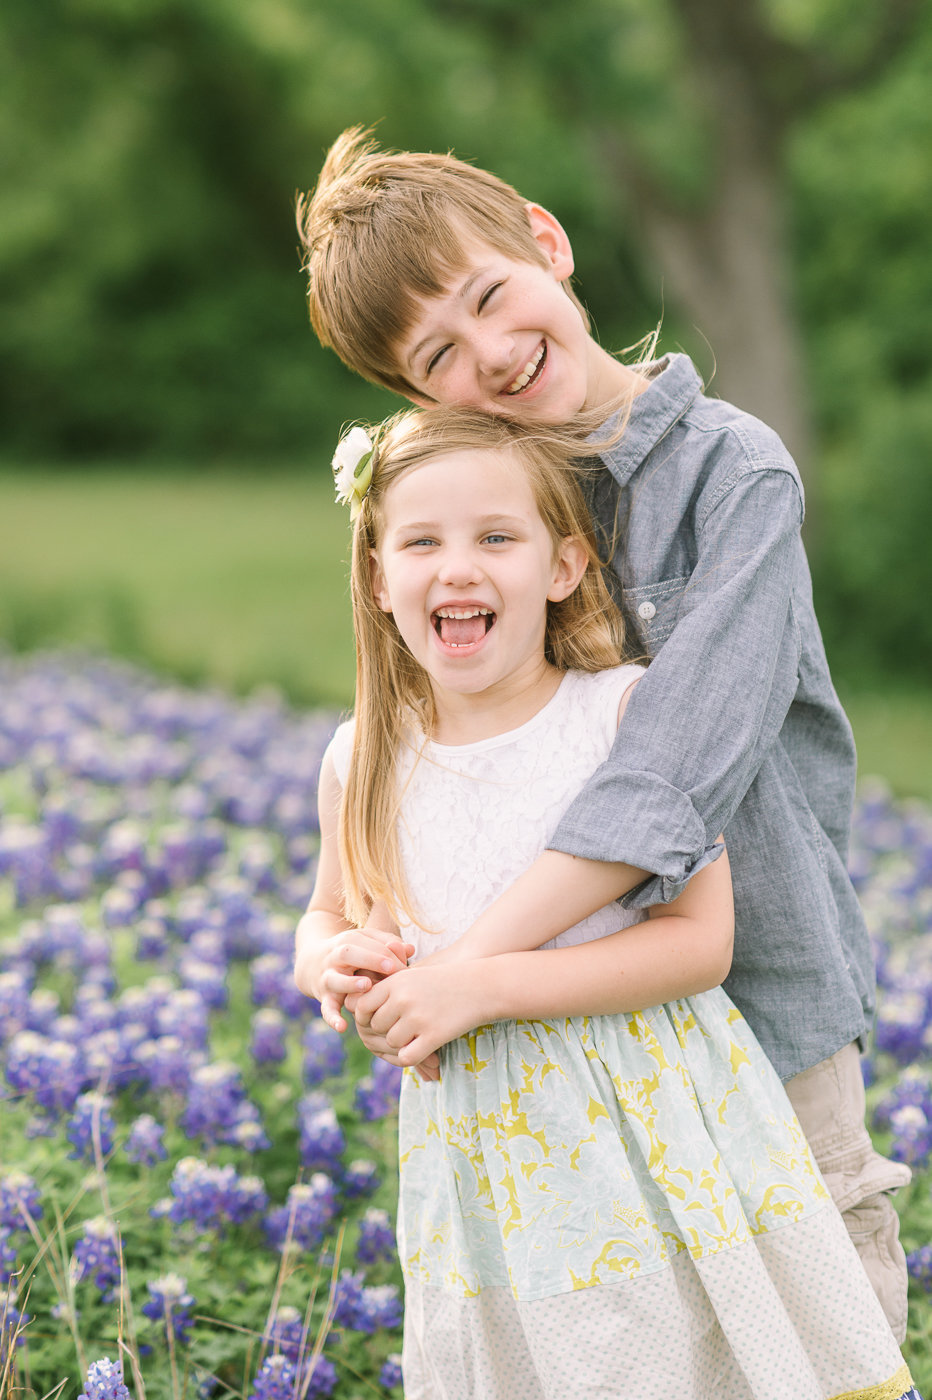 bluebonnet-texas-family-portrait-photographer-12